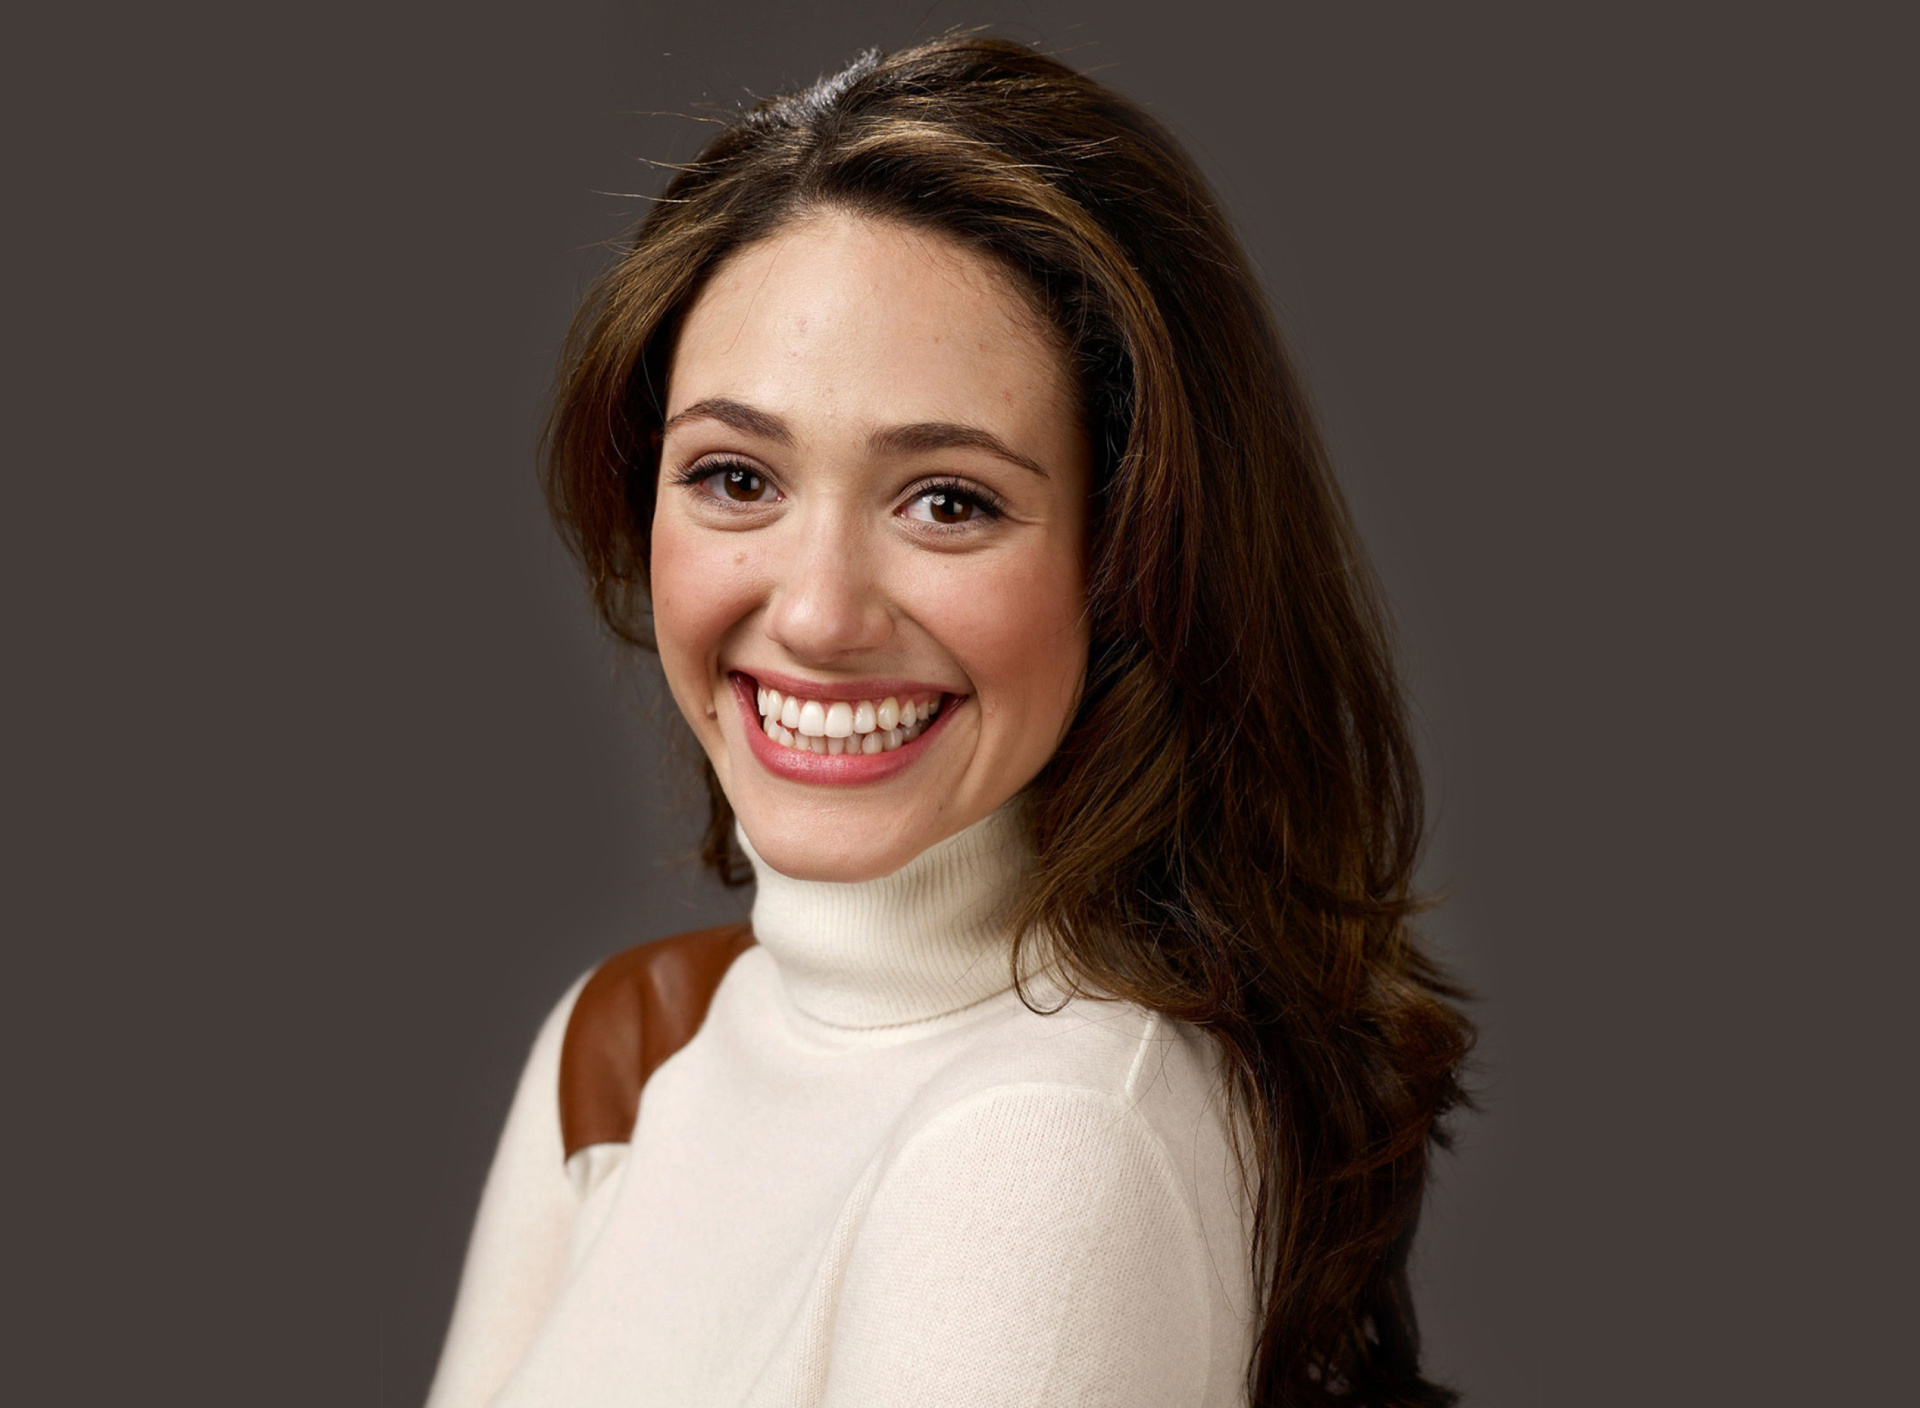 Emmy Rossum Smiling wallpaper 1920x1408